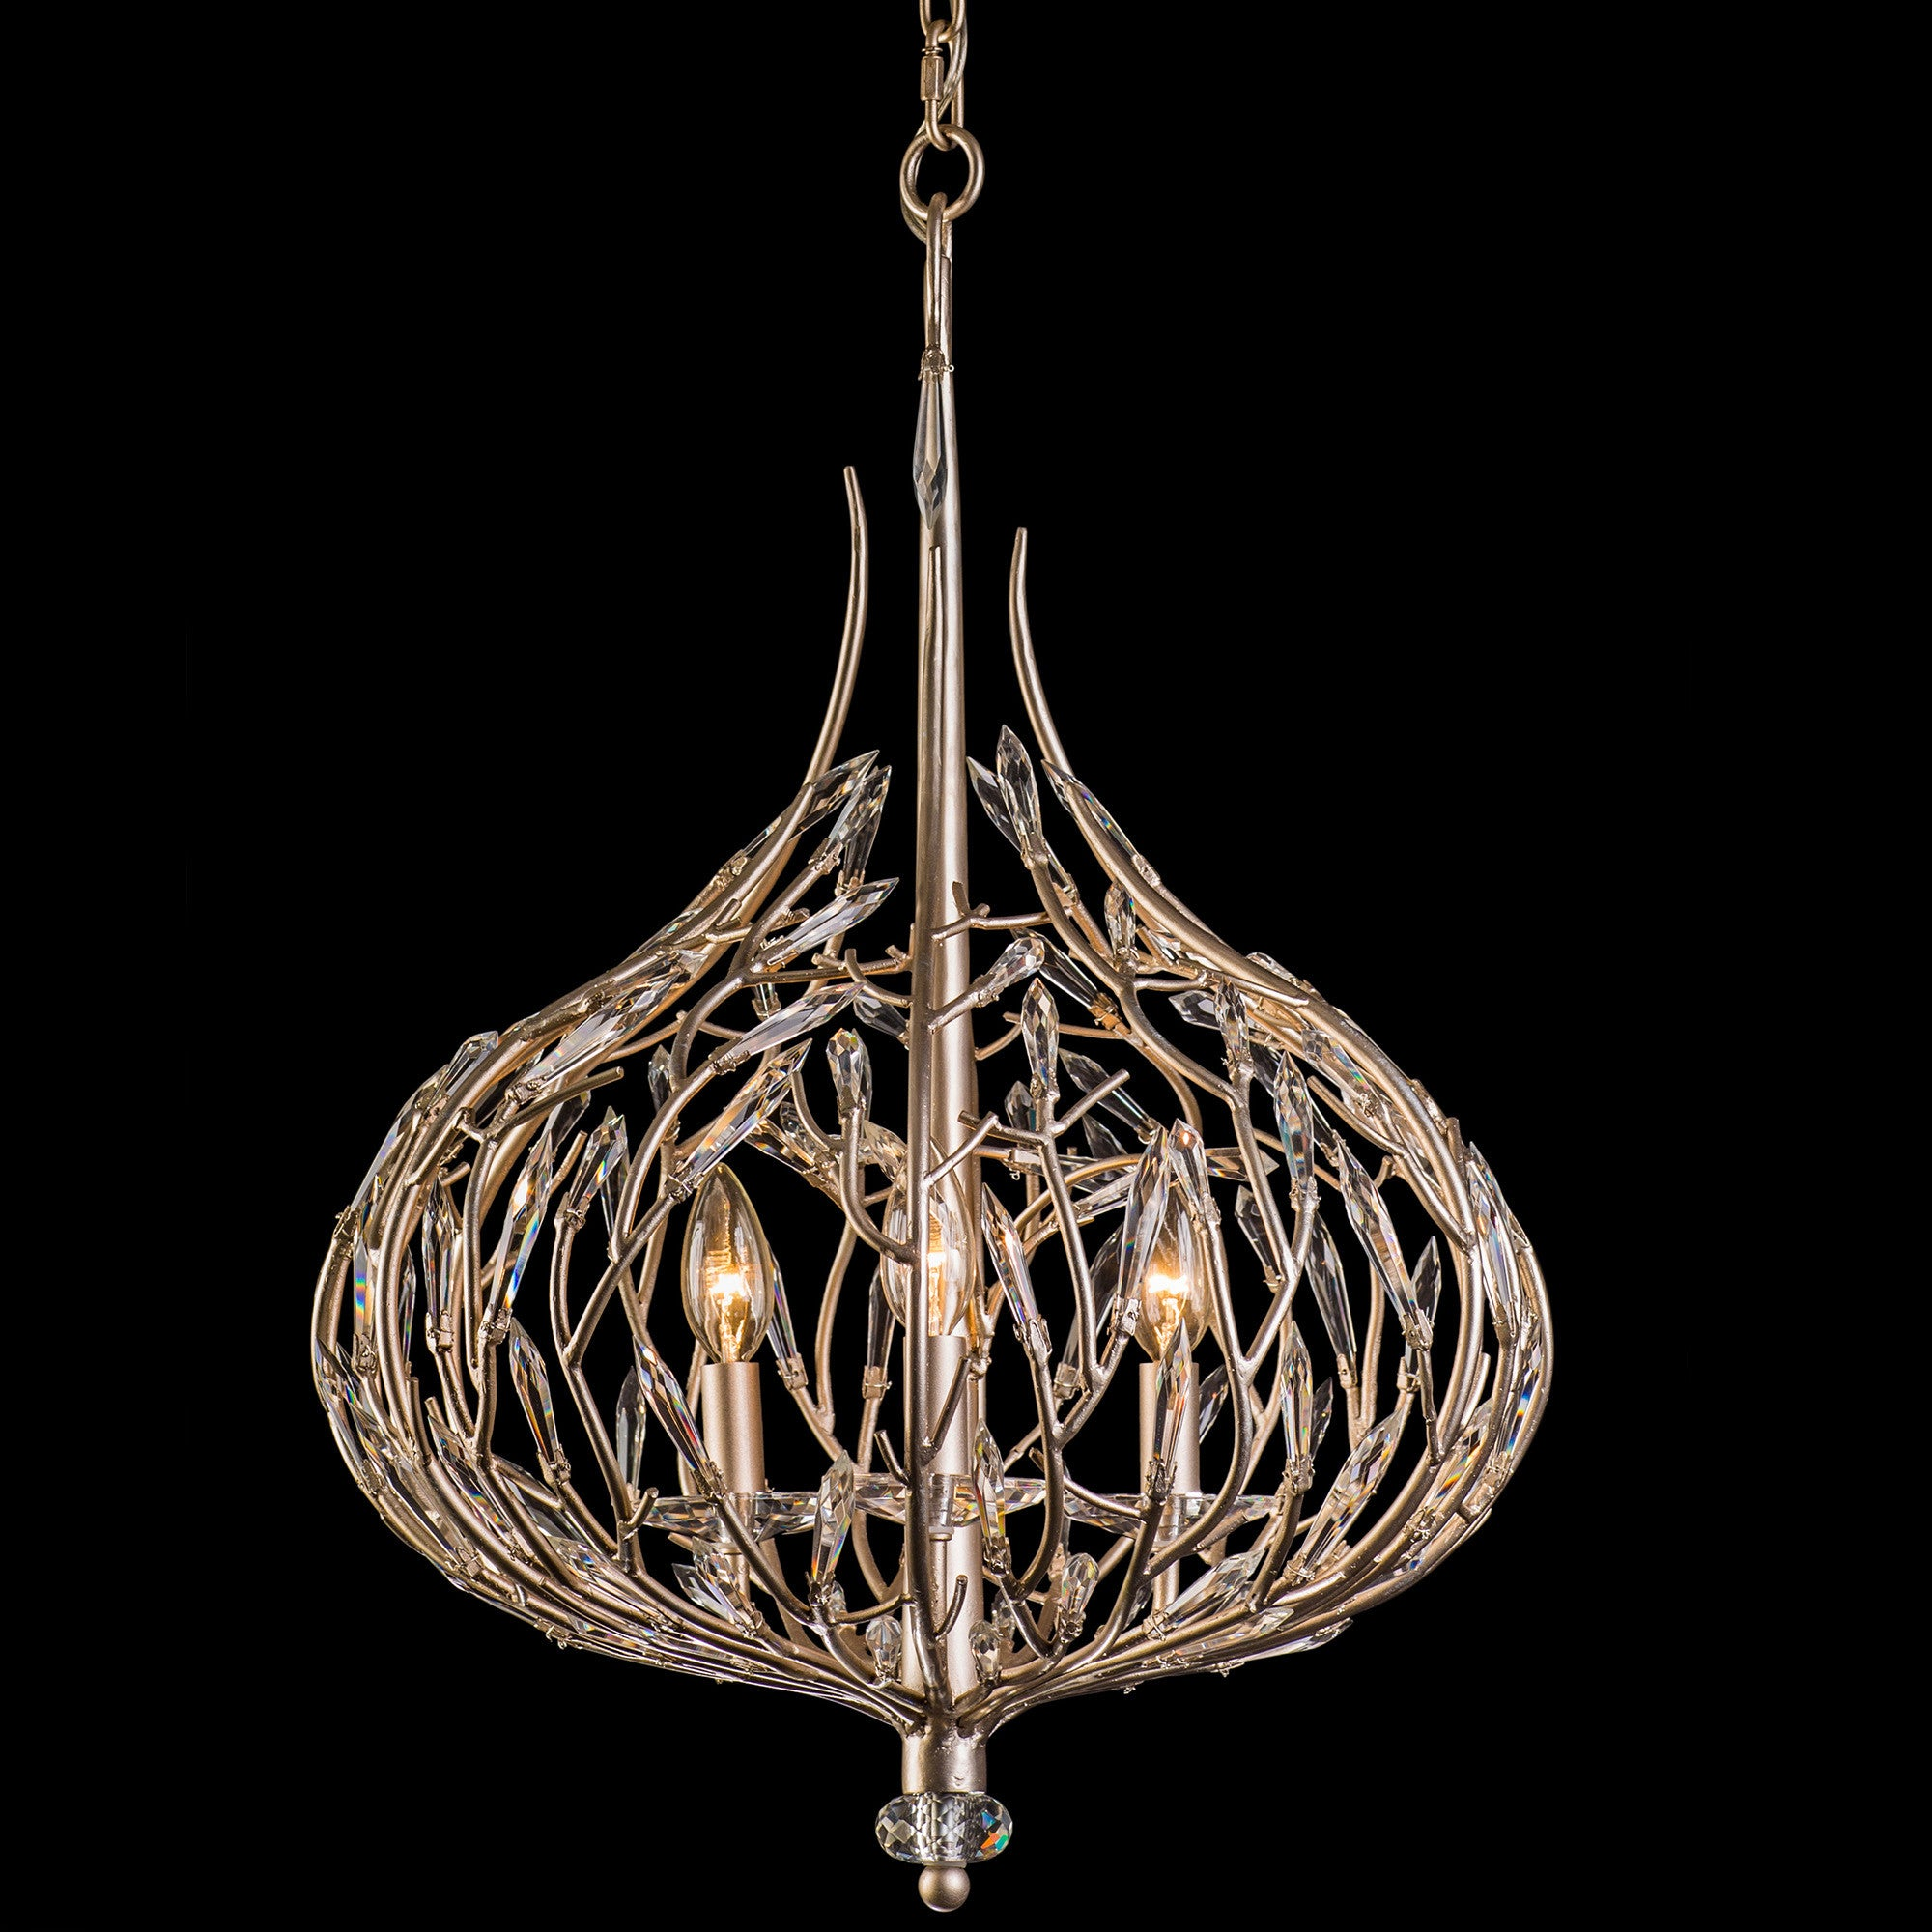 chandelier light chandeliers crystal lights ceiling rosemont all